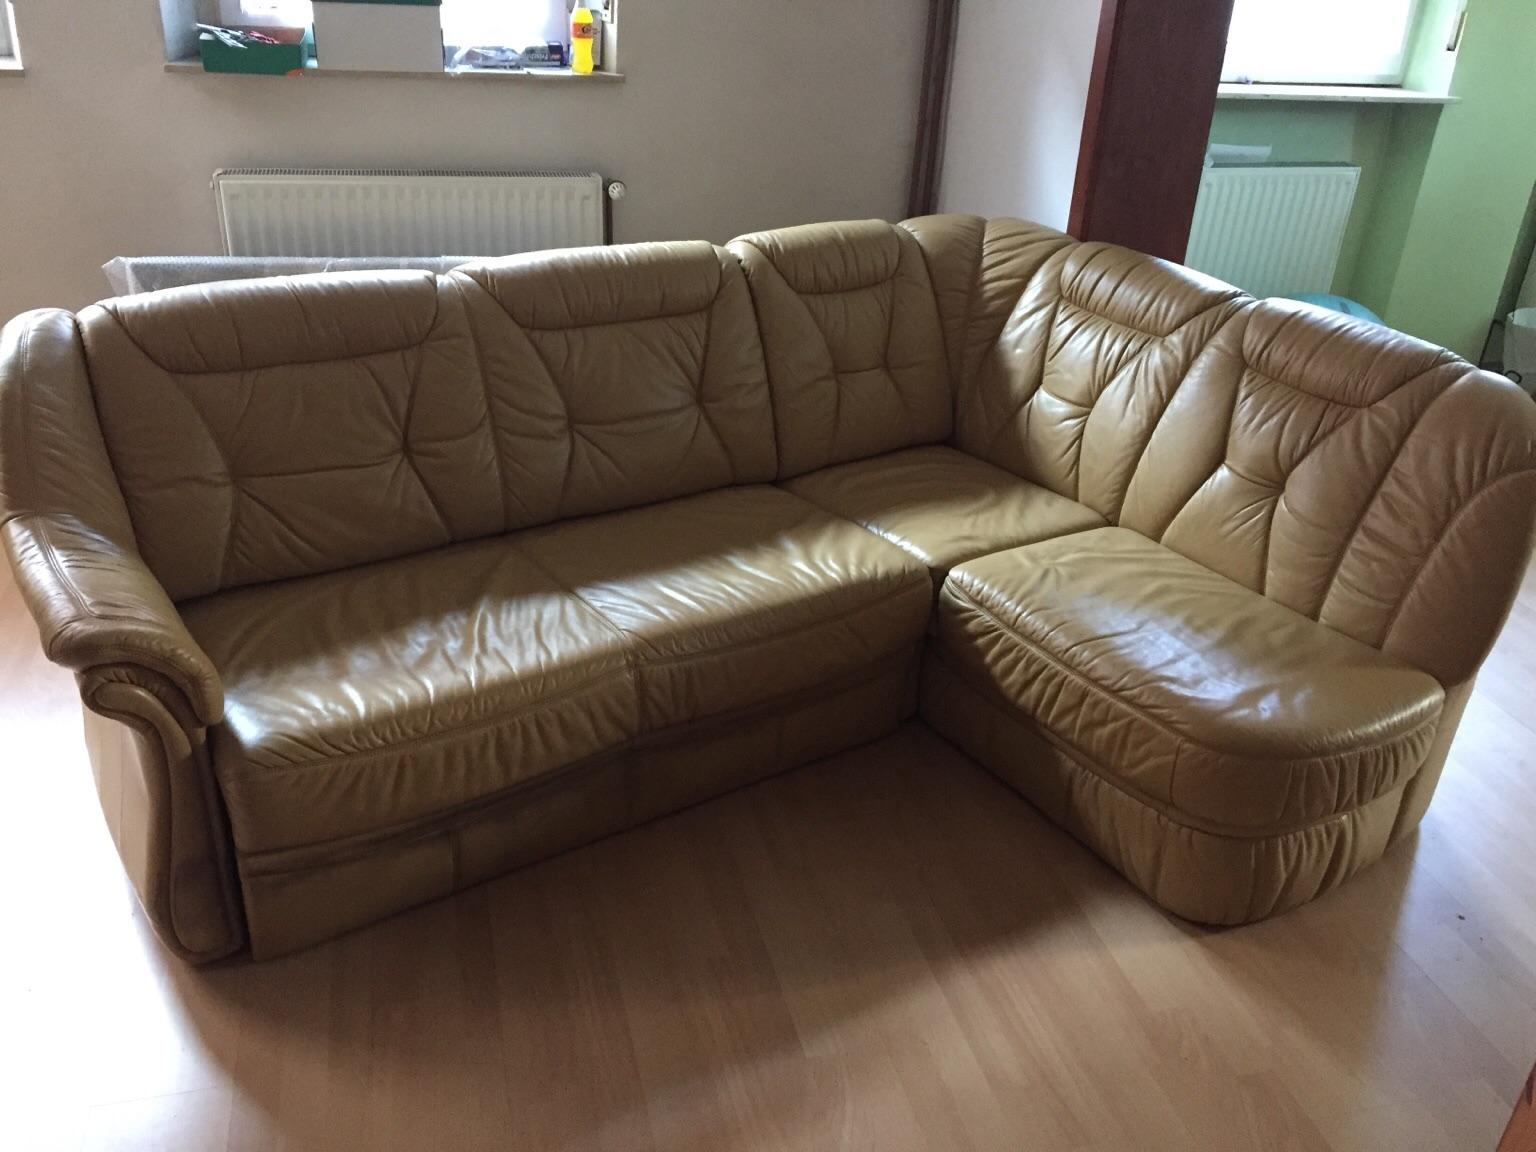 Ausziehbare Eck Ledercouch In 67590 Monsheim For Free For Sale Shpock